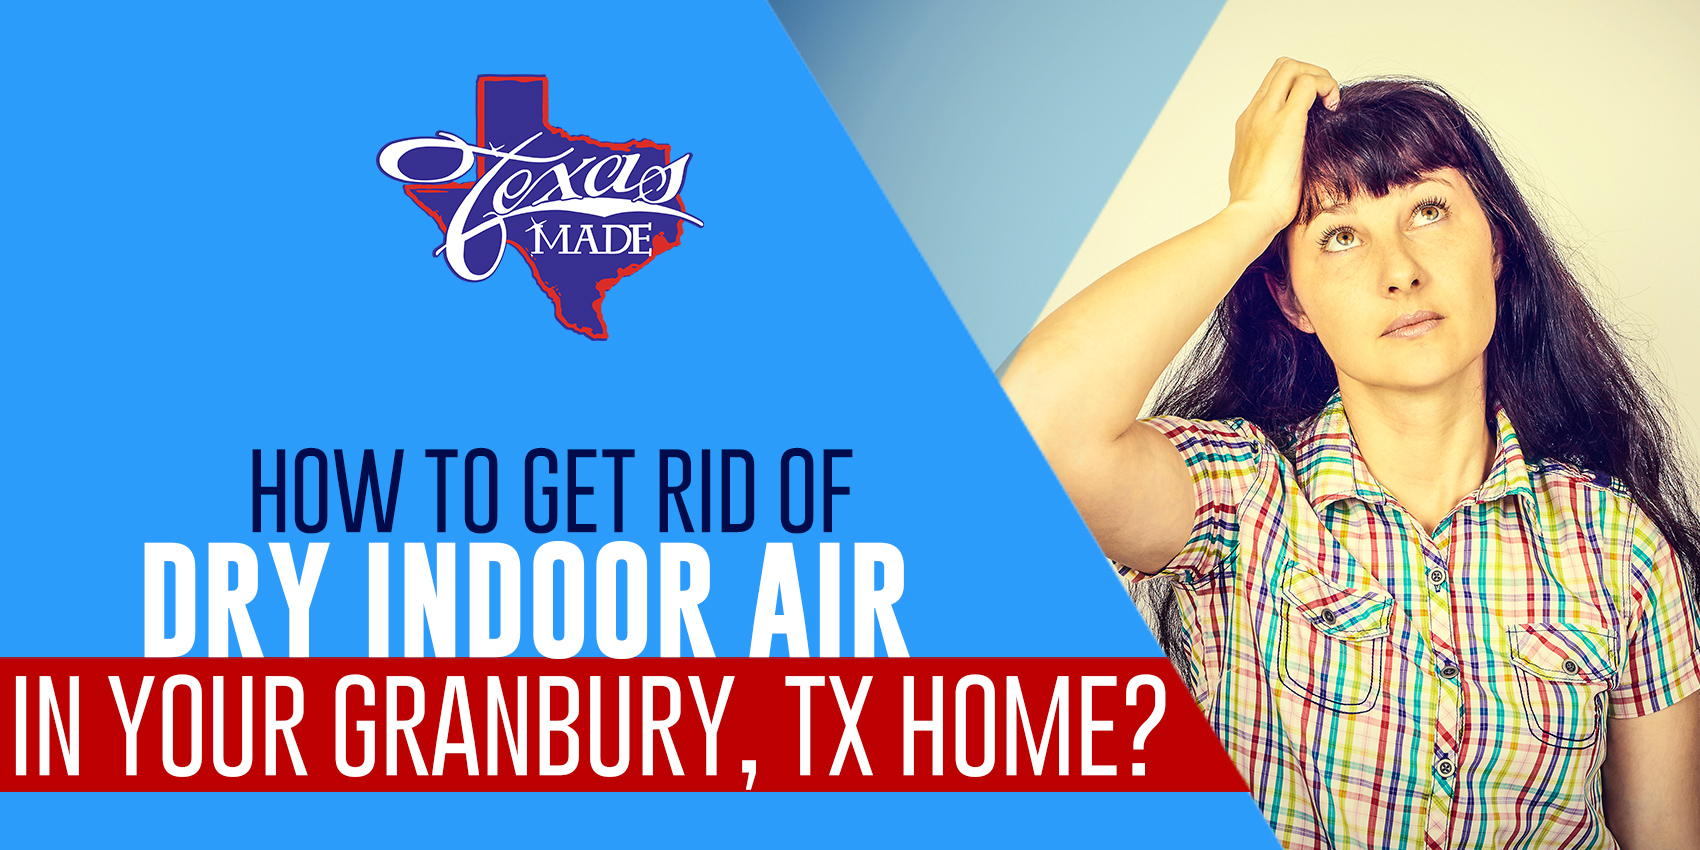 How to Get Rid of Dry Indoor Air in Your Granbury, TX Home?